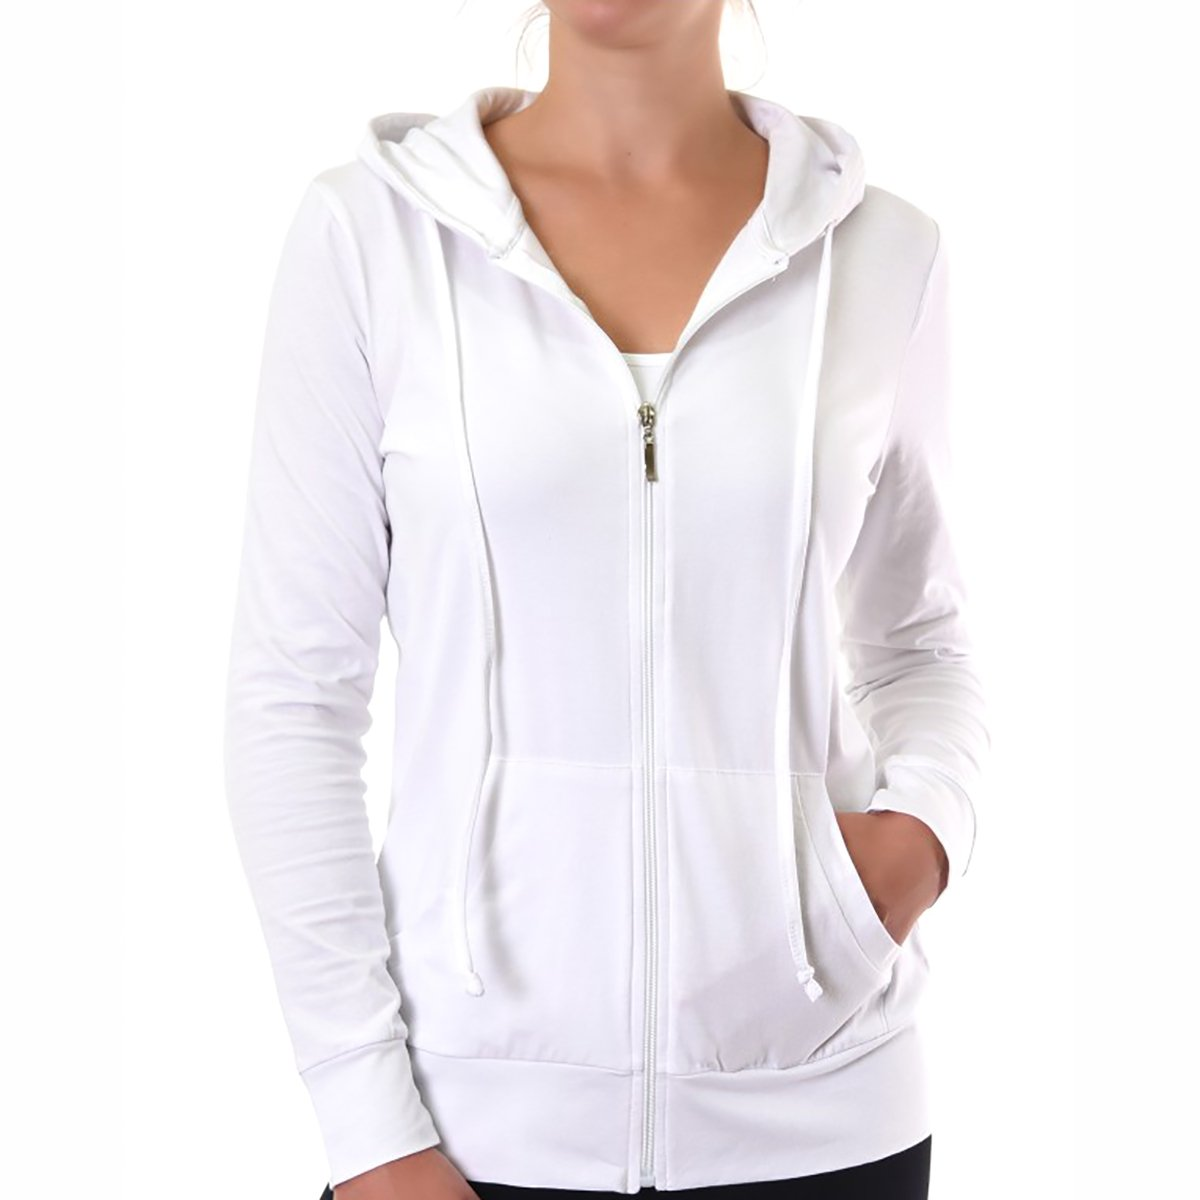 Glass House Apparel Women's Zip up Active Yoga Gym Casual Thin Cotton Long Sleeve Jacket Hoodie (White, Large)